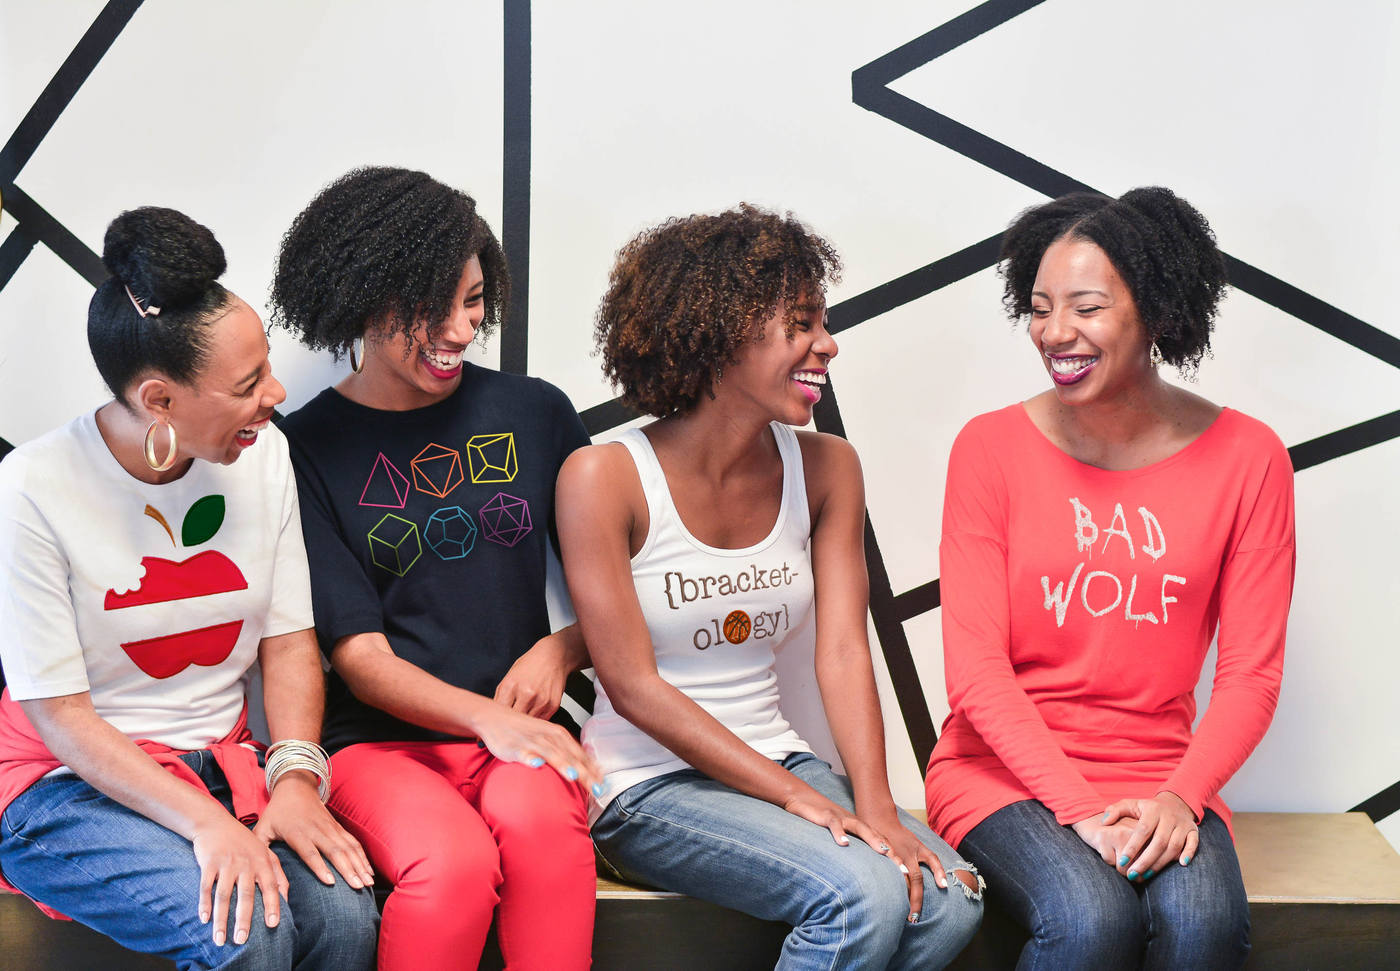 Four black women are sitting on a bench in front of a white wall with geometric black artwork. The women are smiling and laughing. Each woman has a shirt with an applique or embroidery design on the front.